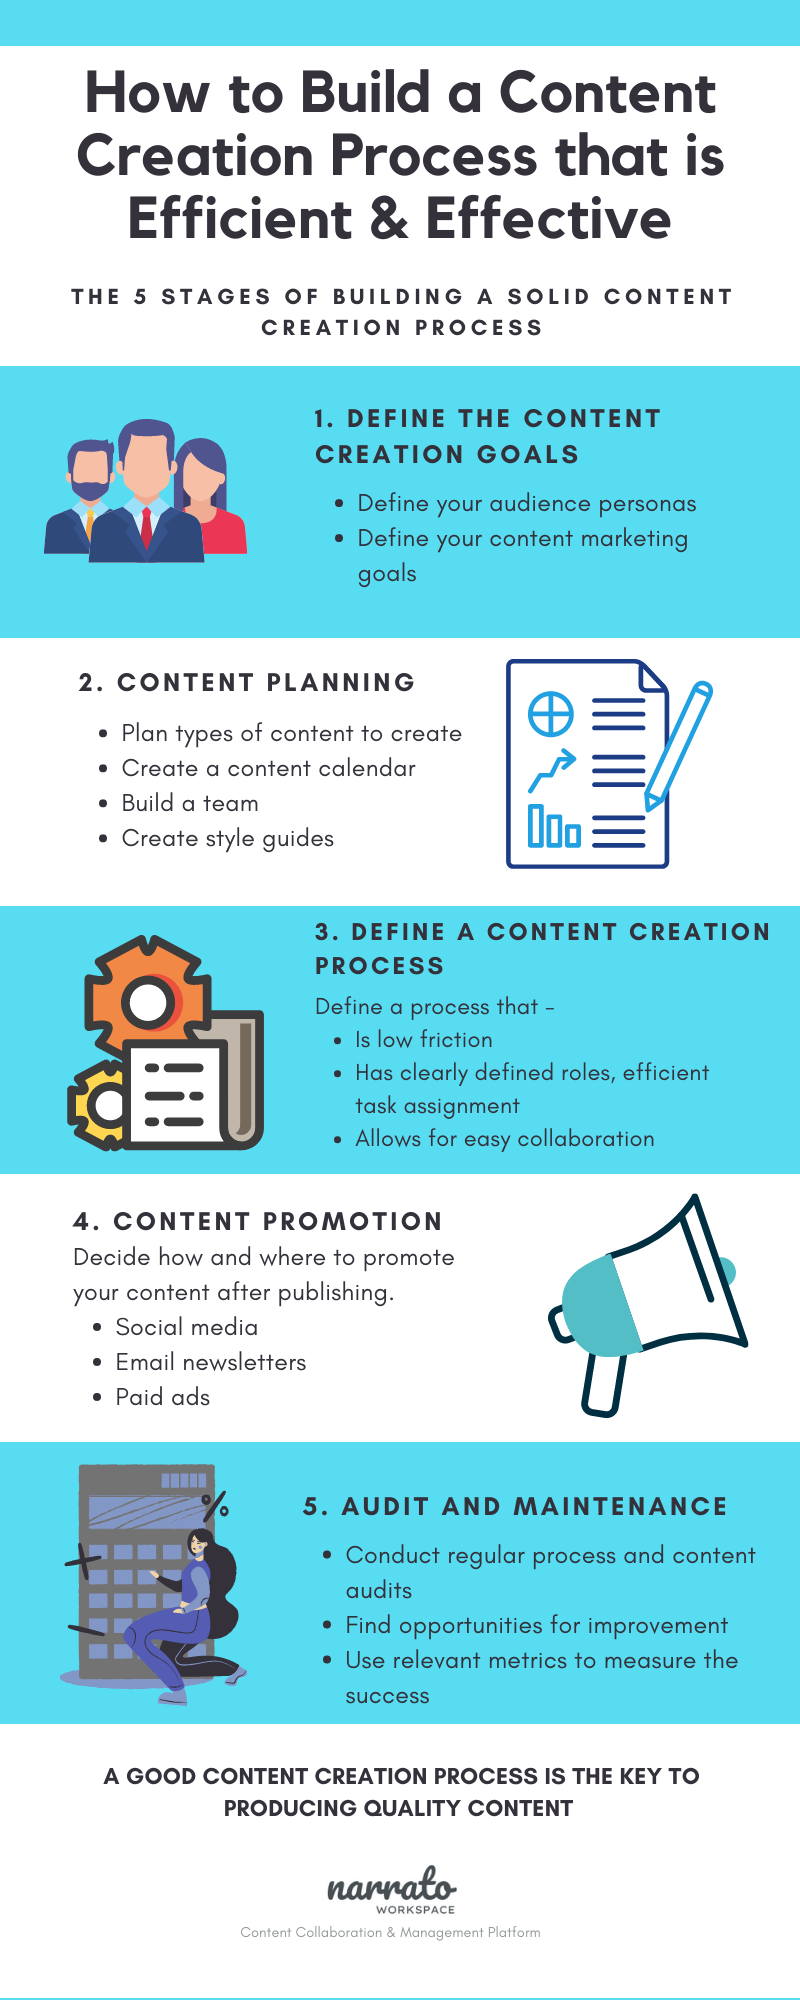 Building a Content Creation Process